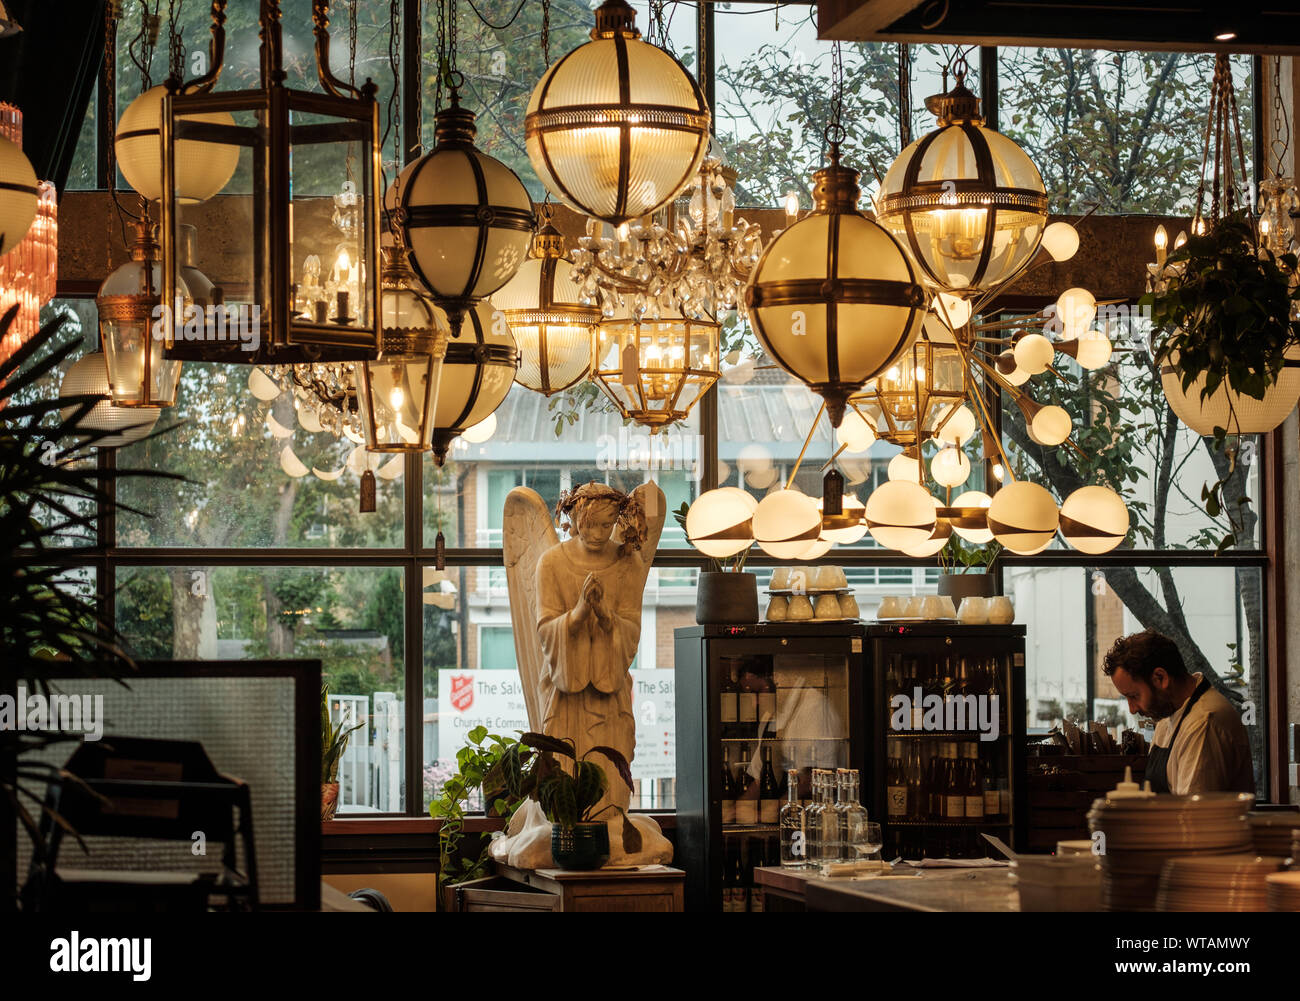 Trendy hipster interior decor at The Dining Room, Mare Street Market, Hackney, East London UK. Chandeliers by Pure White Lines. Stock Photo